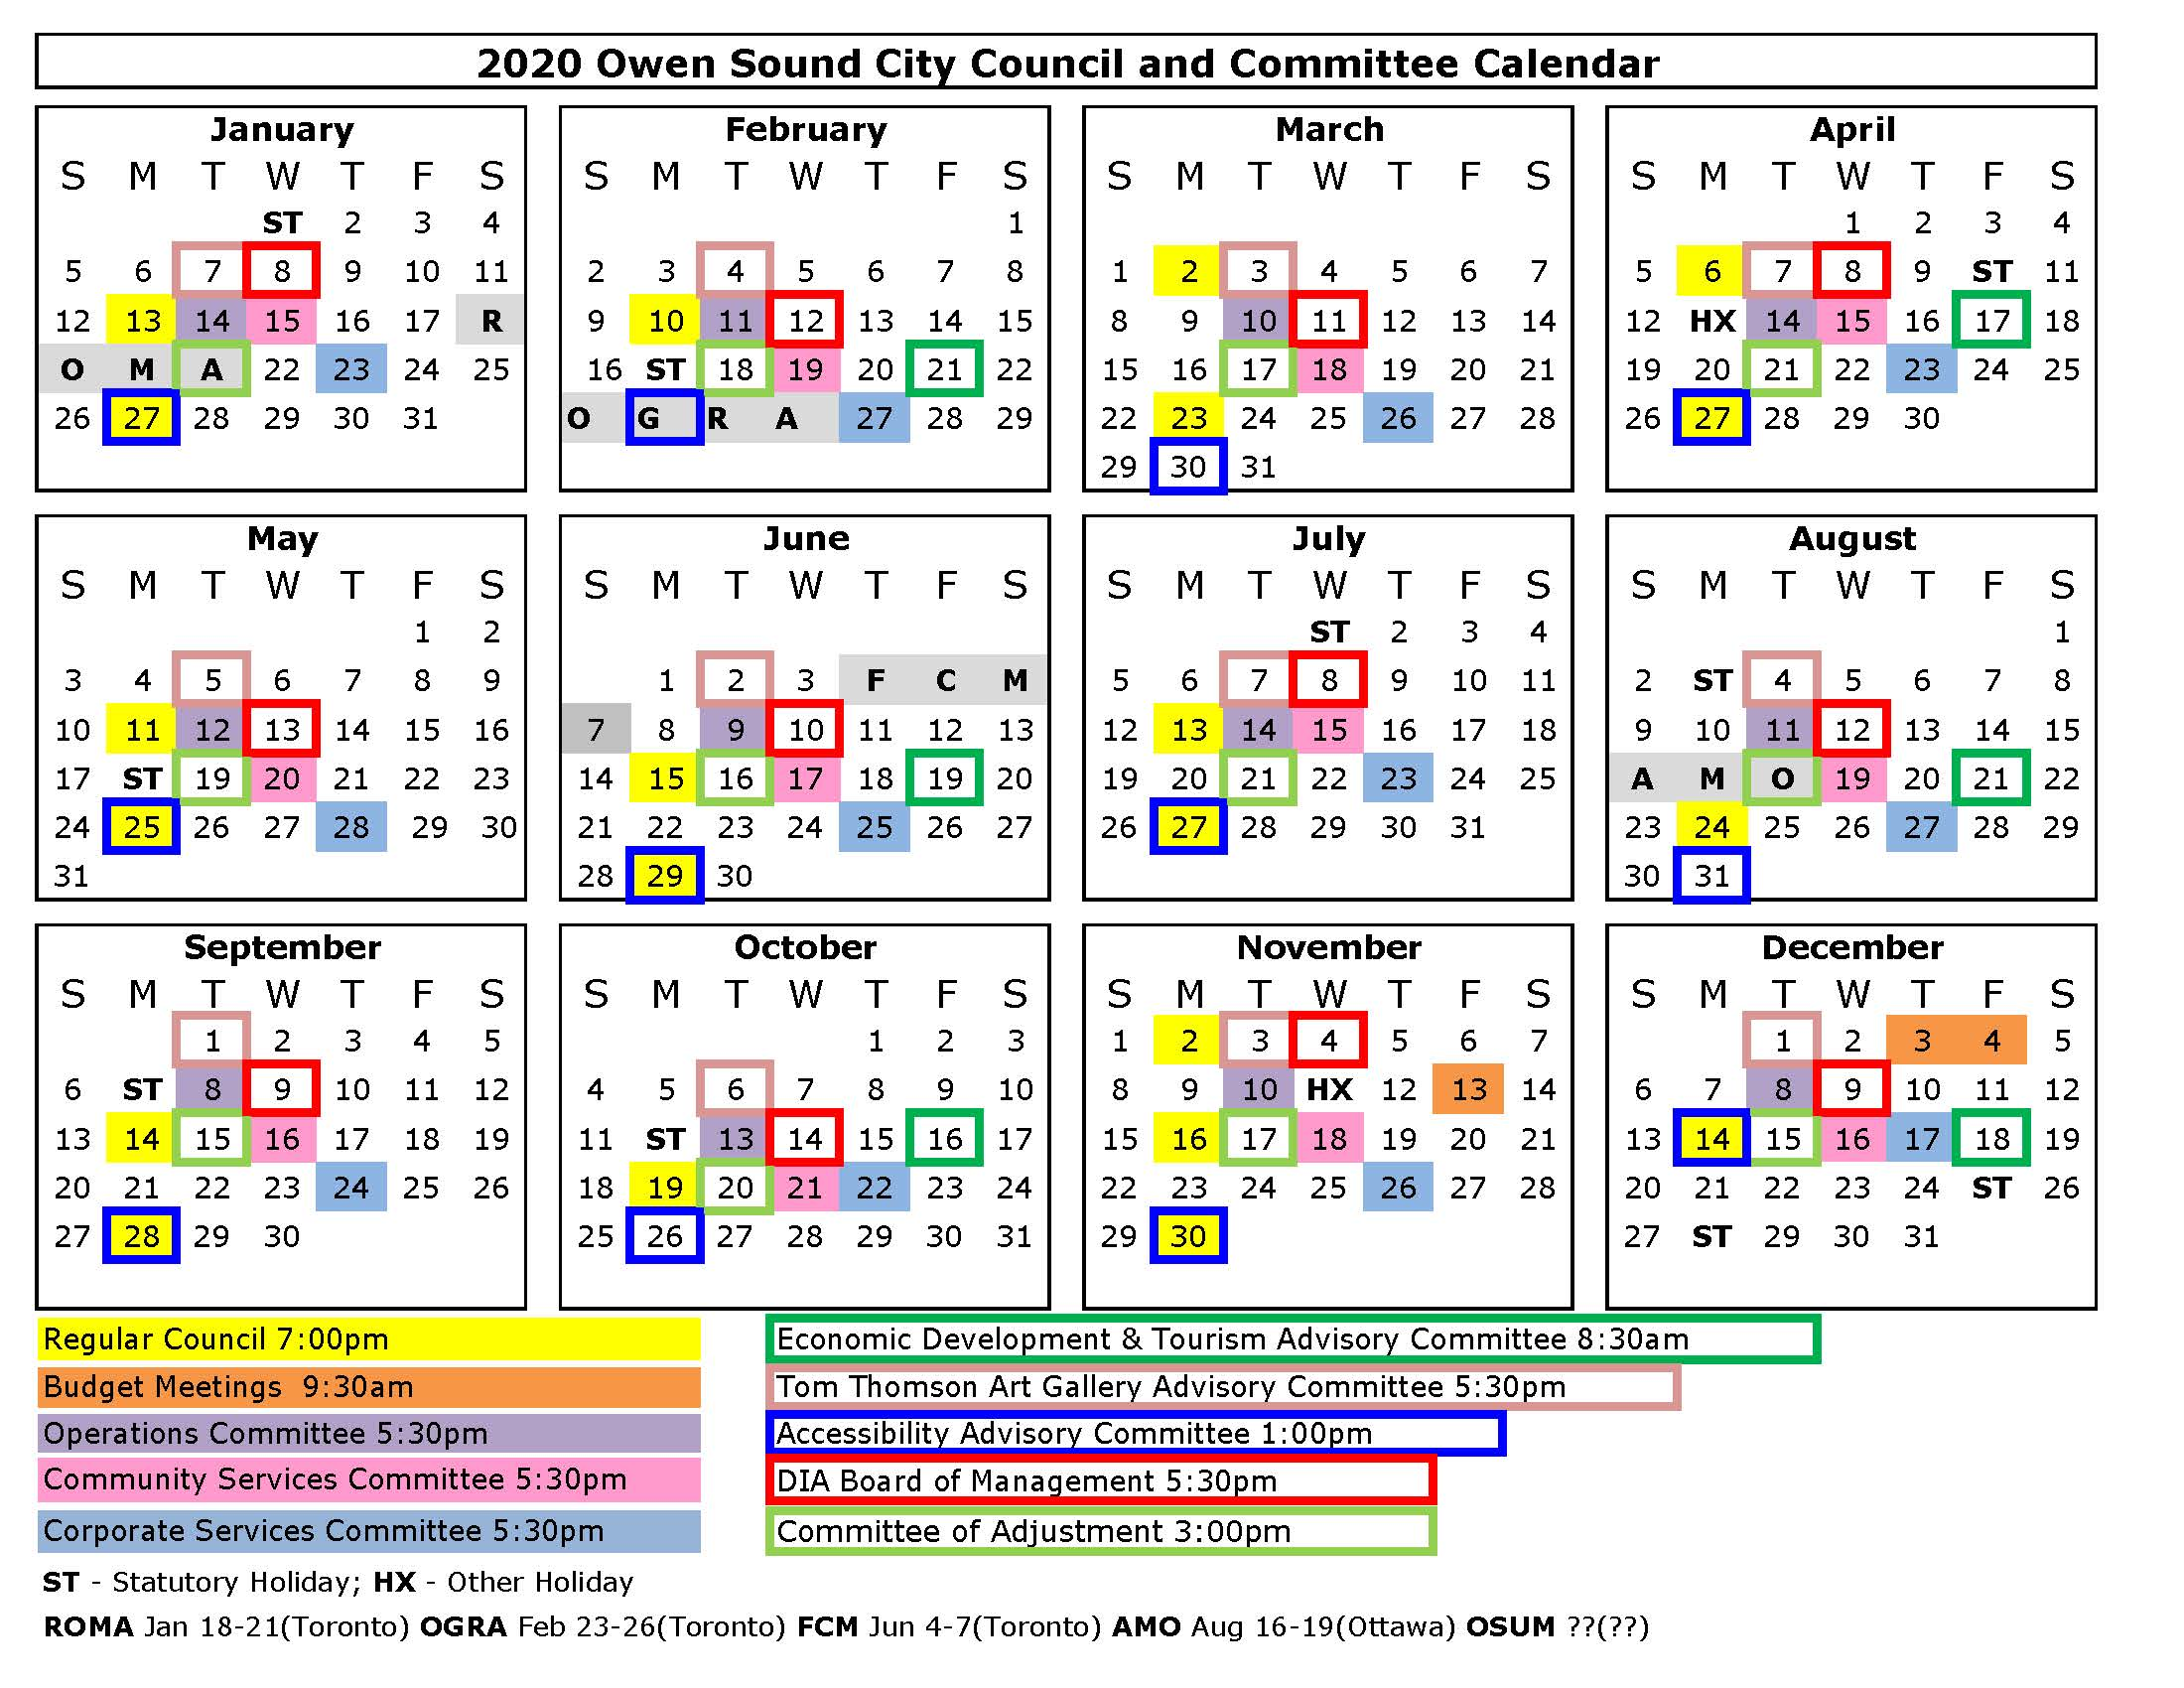 2020 Council and Committee Calendar